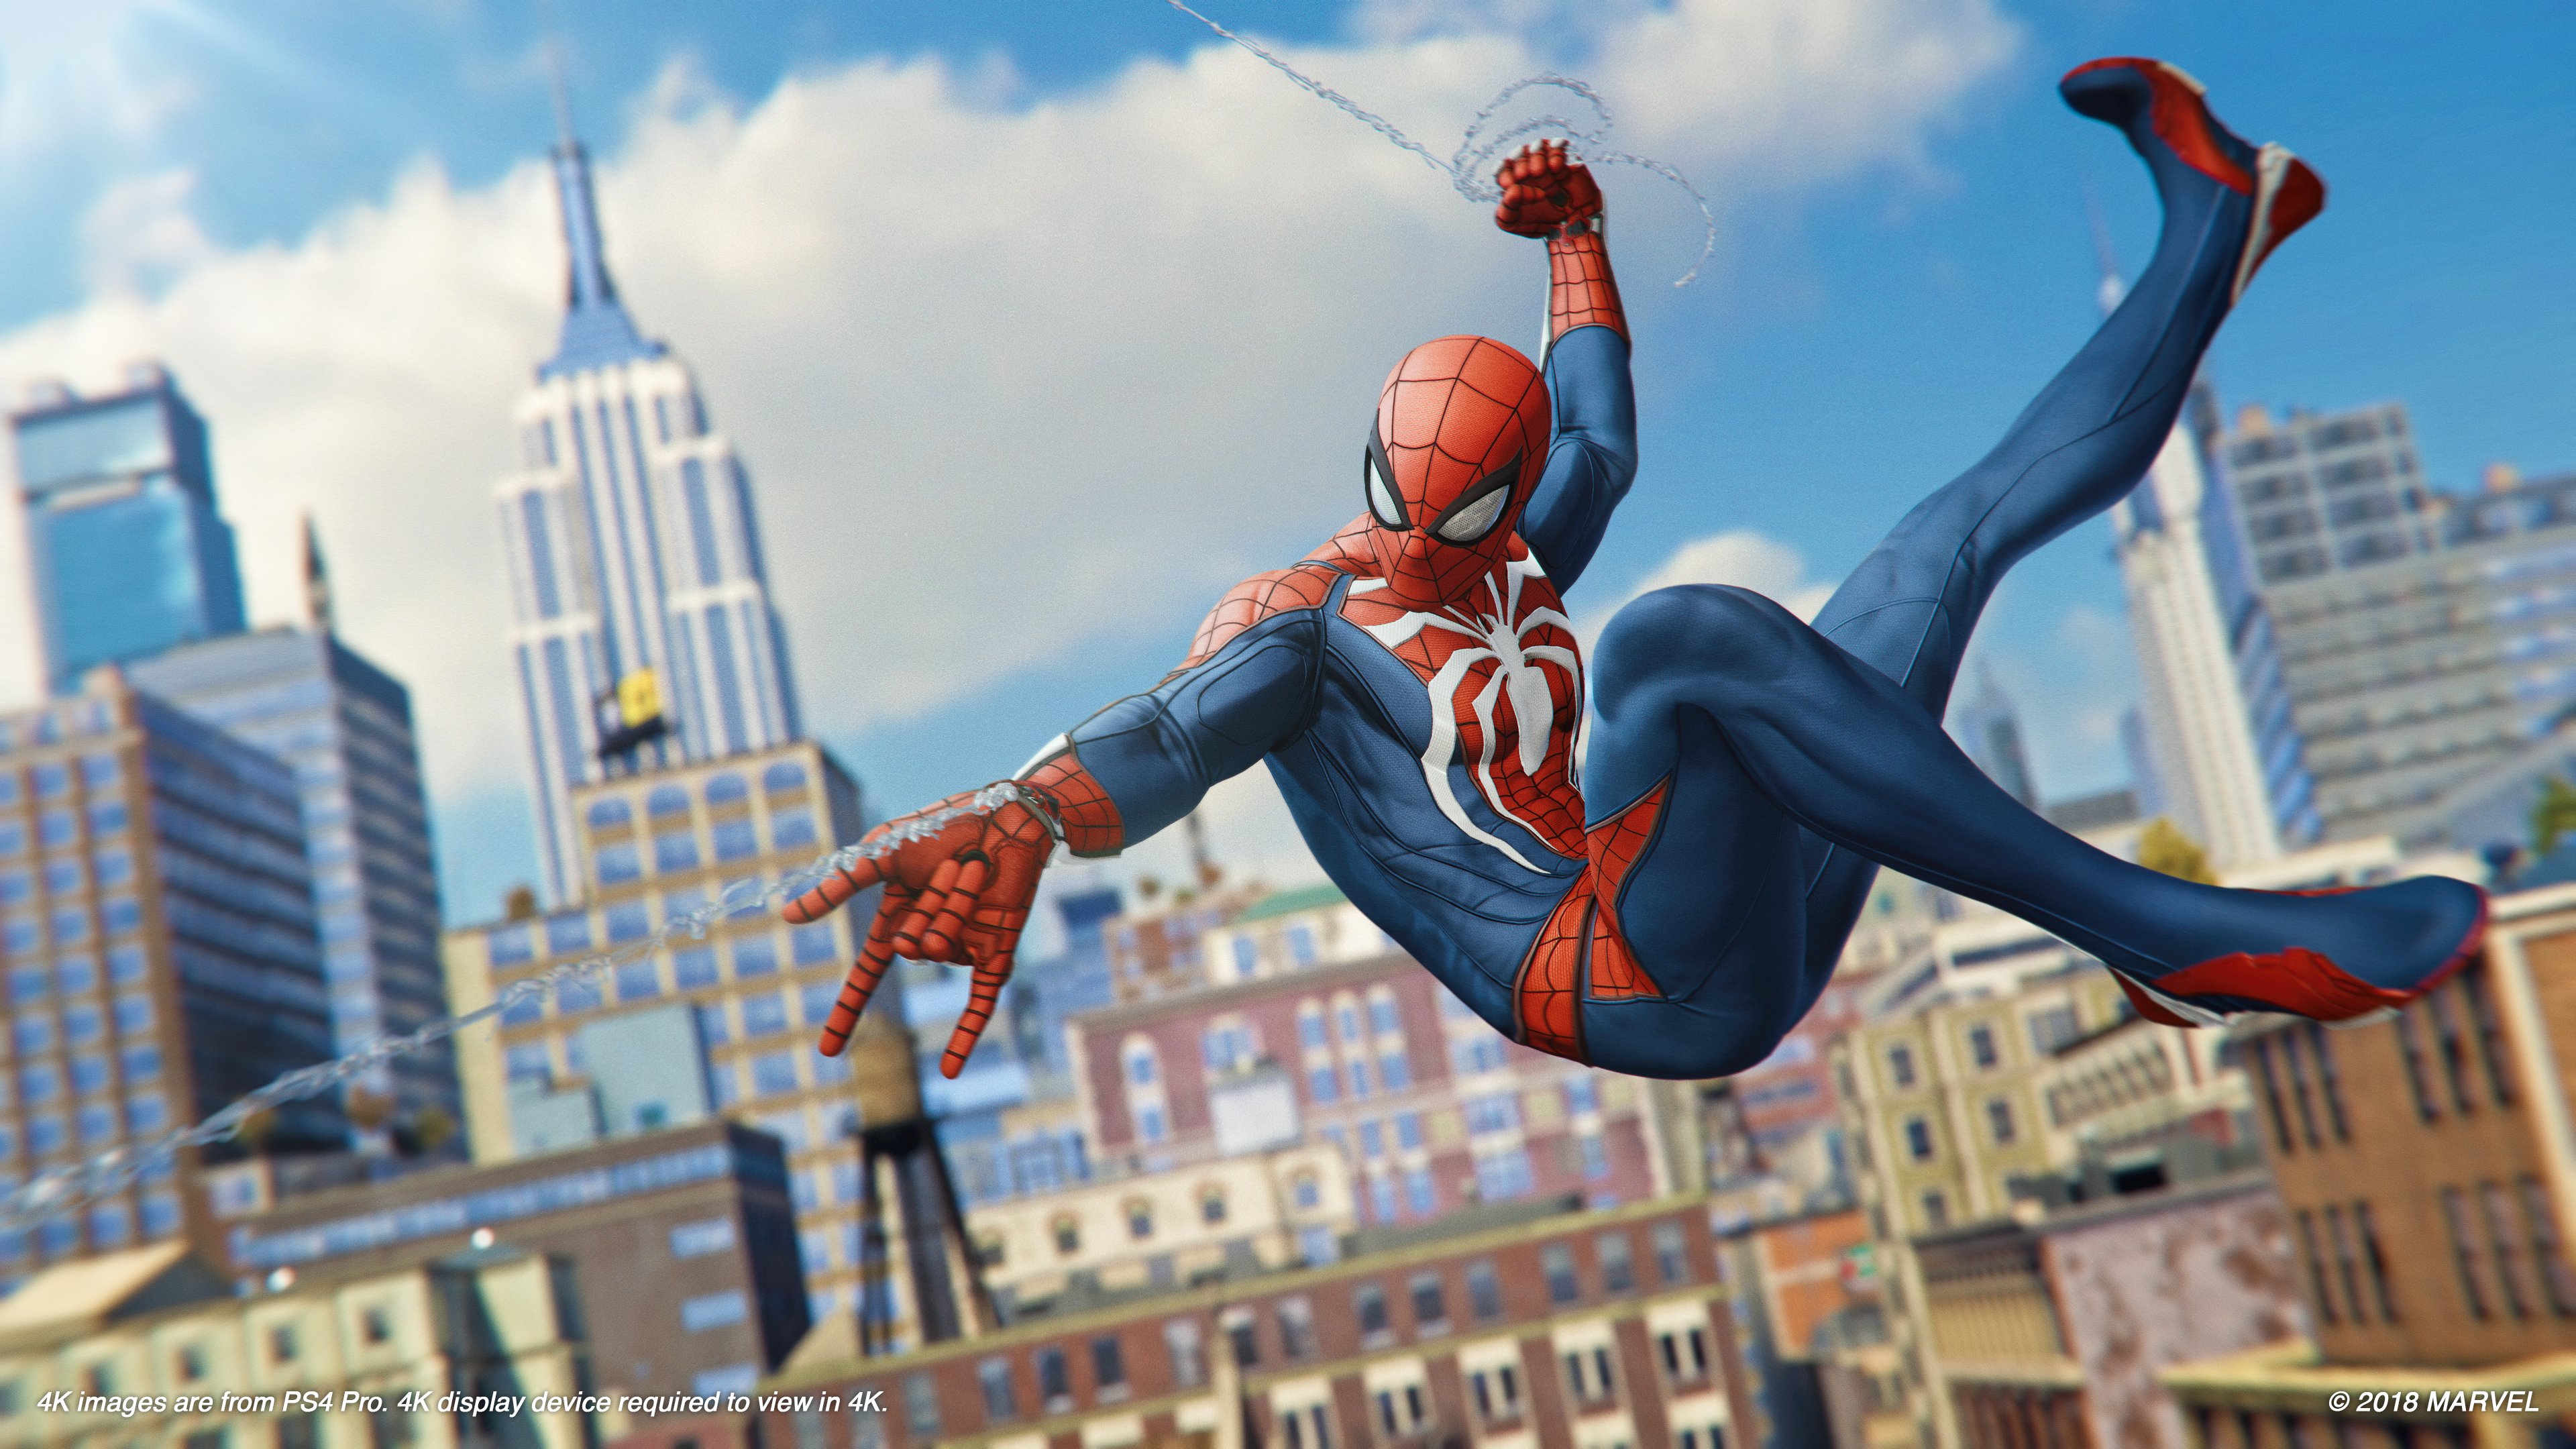 Marvel S Spider Man Ps4 Web Sling 4k Ultra Fond D Ecran Hd